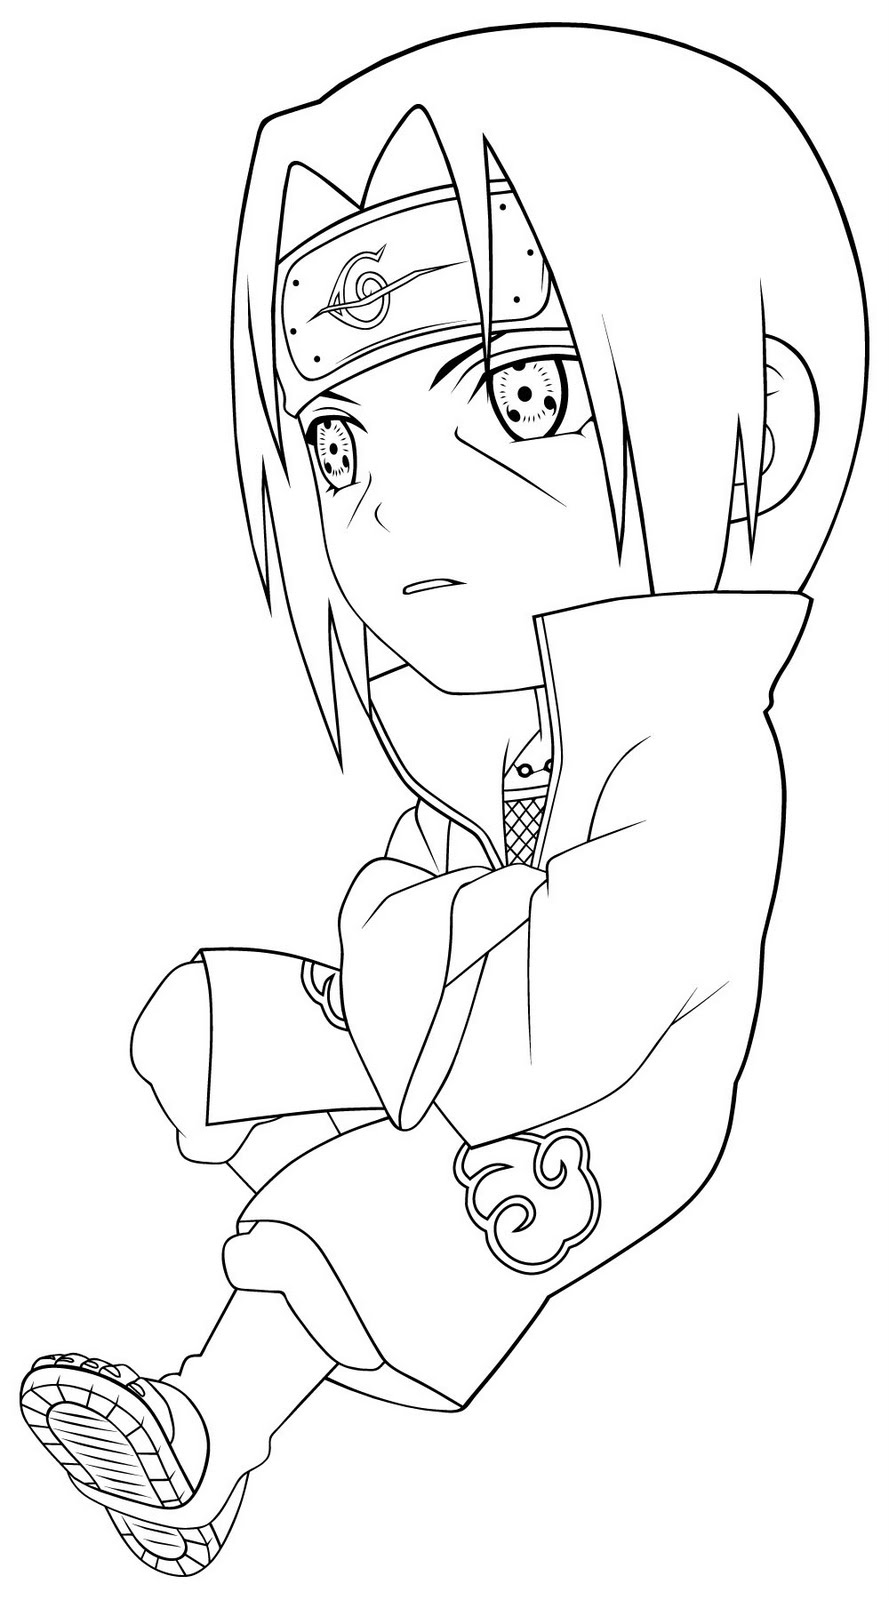 naruto coloring page printable naruto coloring pages to get your kids occupied page coloring naruto